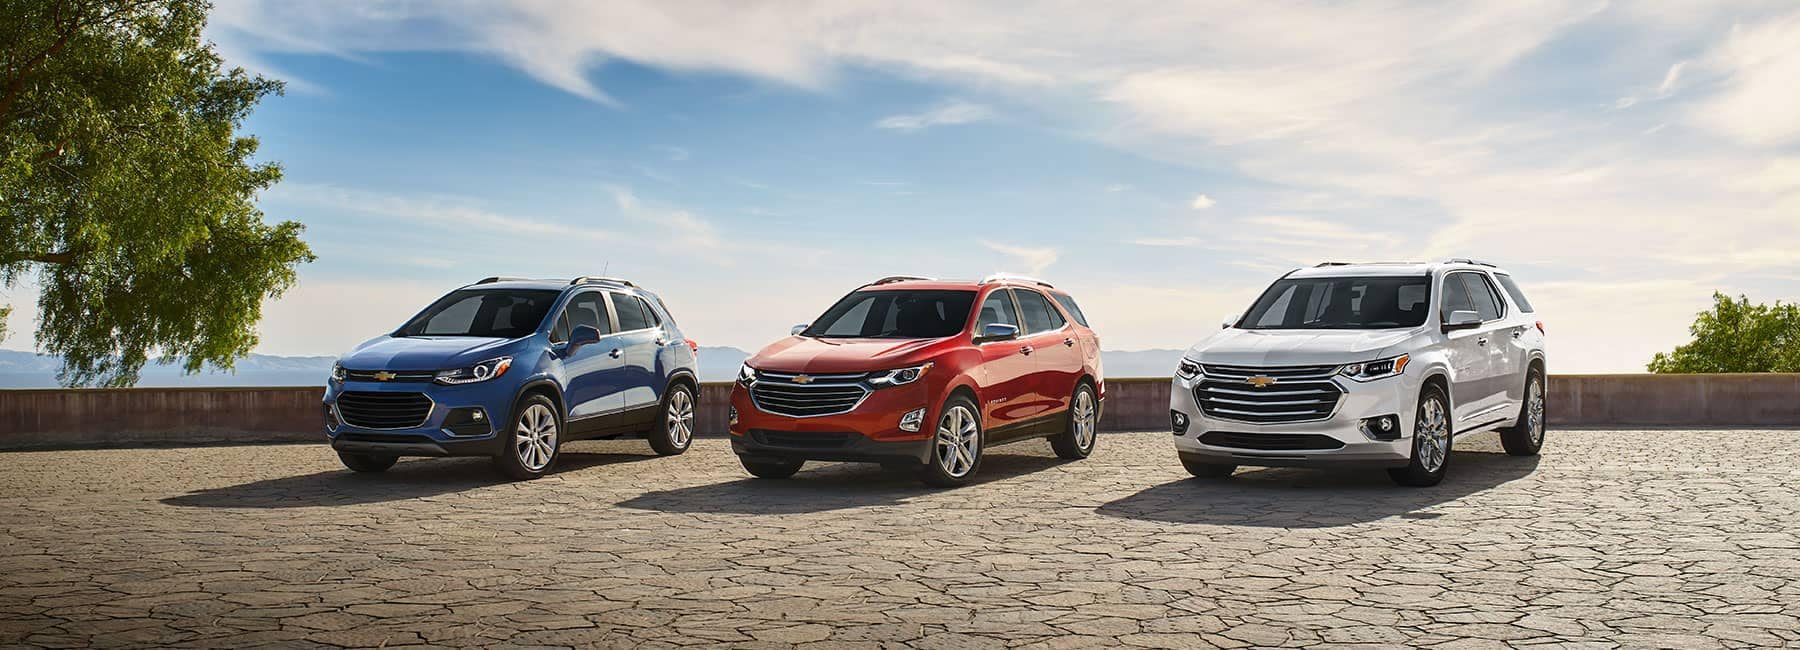 Chevy Dealers In Mi >> Chevrolet Dealership Near Richmond Mi New And Used Cars